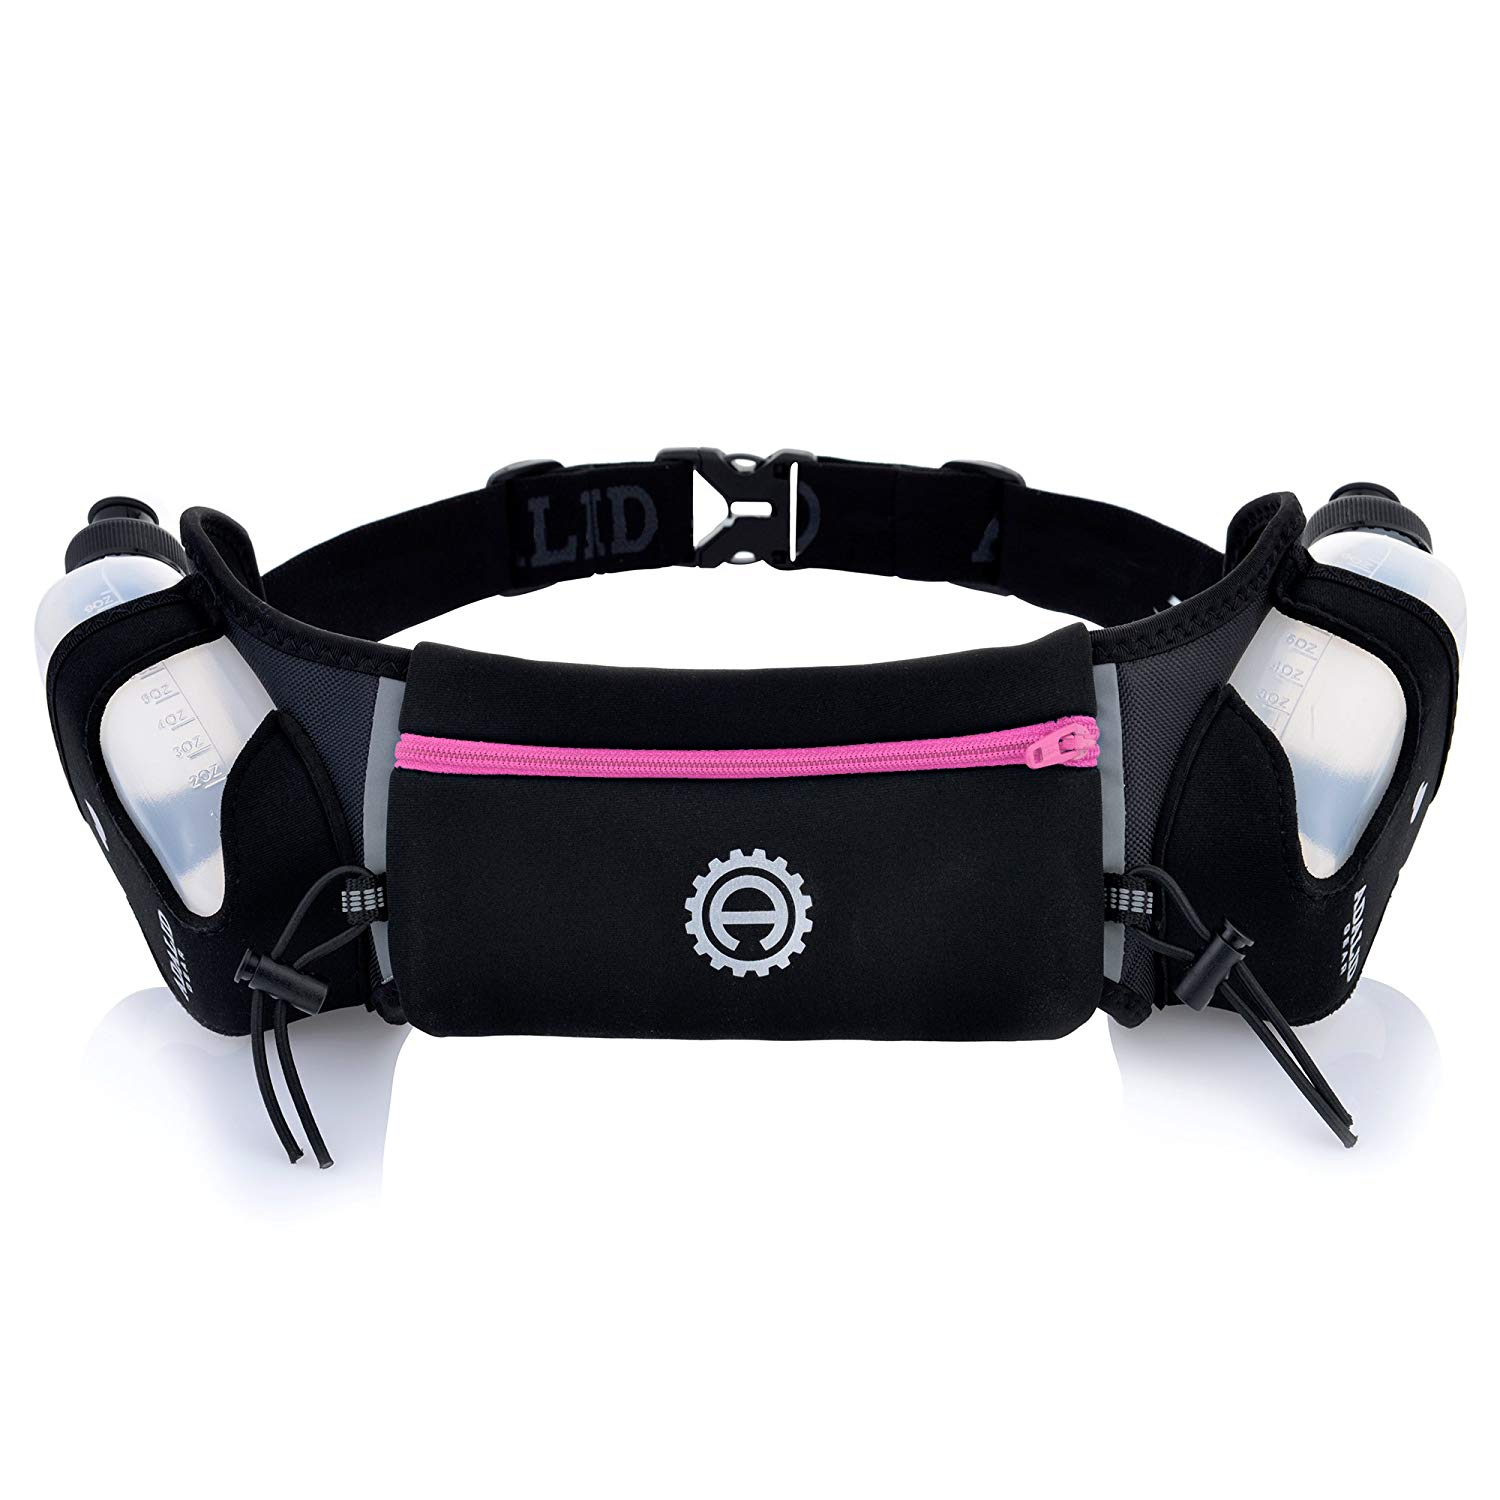 Adalid Gear Hydration-Belt for running